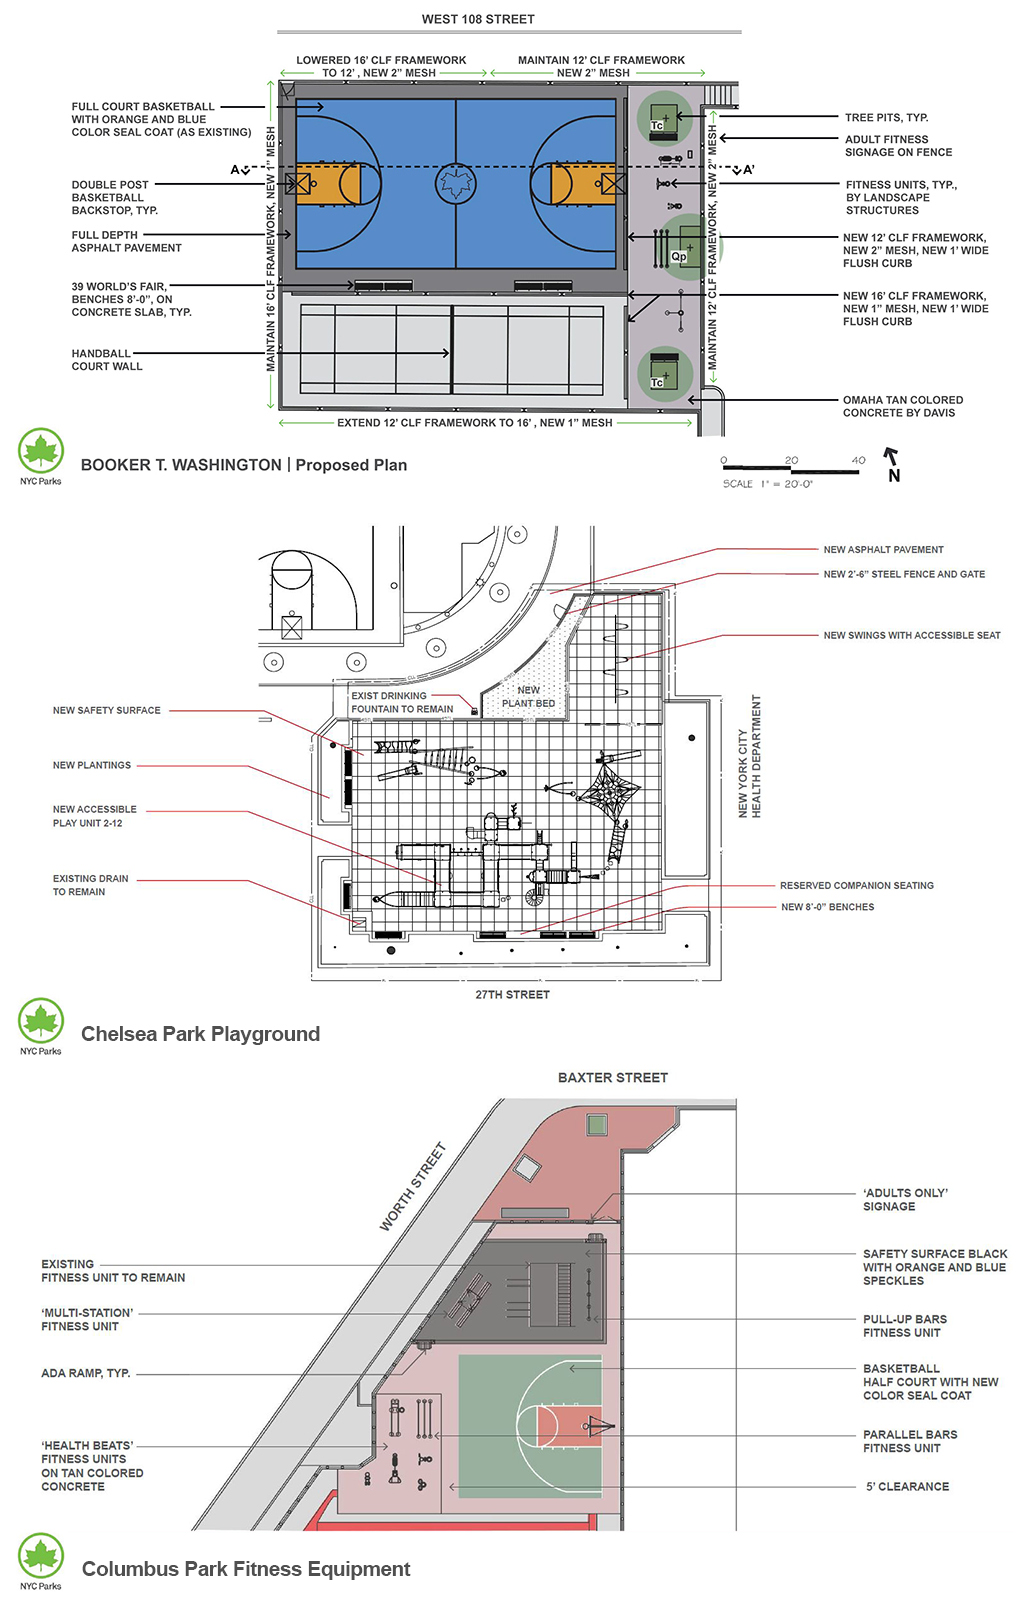 Design of Manhattan General Site Work (MG-914MA)